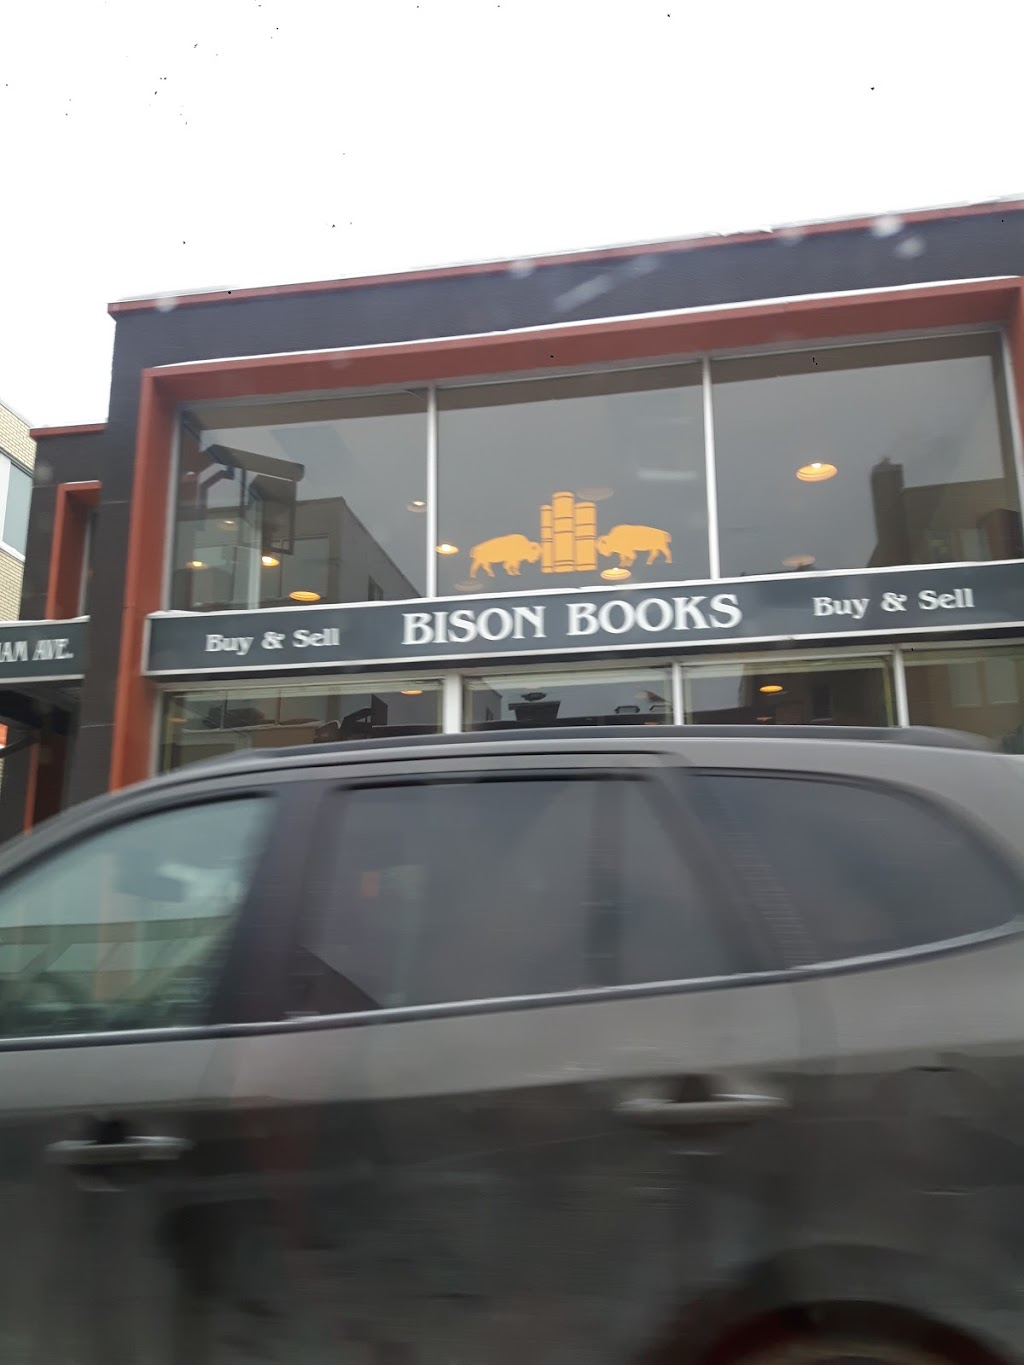 Bison Books | book store | 424 Graham Ave, Winnipeg, MB R3C 0L8, Canada | 2049475931 OR +1 204-947-5931